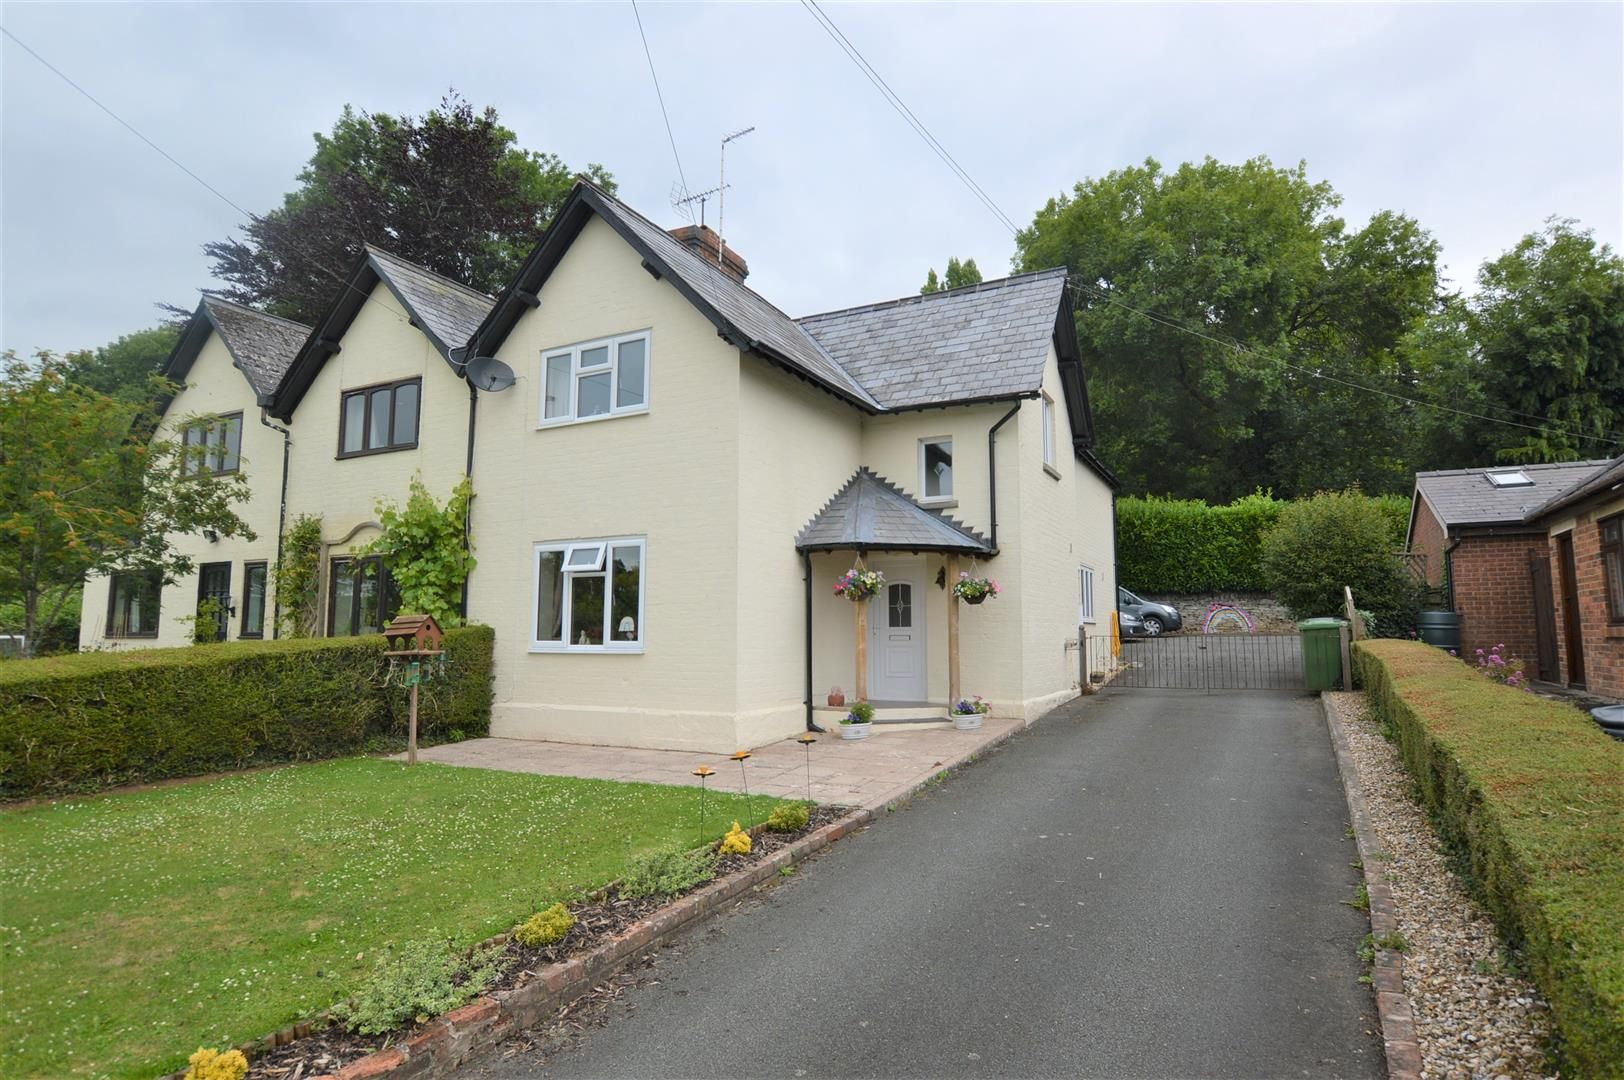 3 bed semi-detached for sale in Almeley, HR3